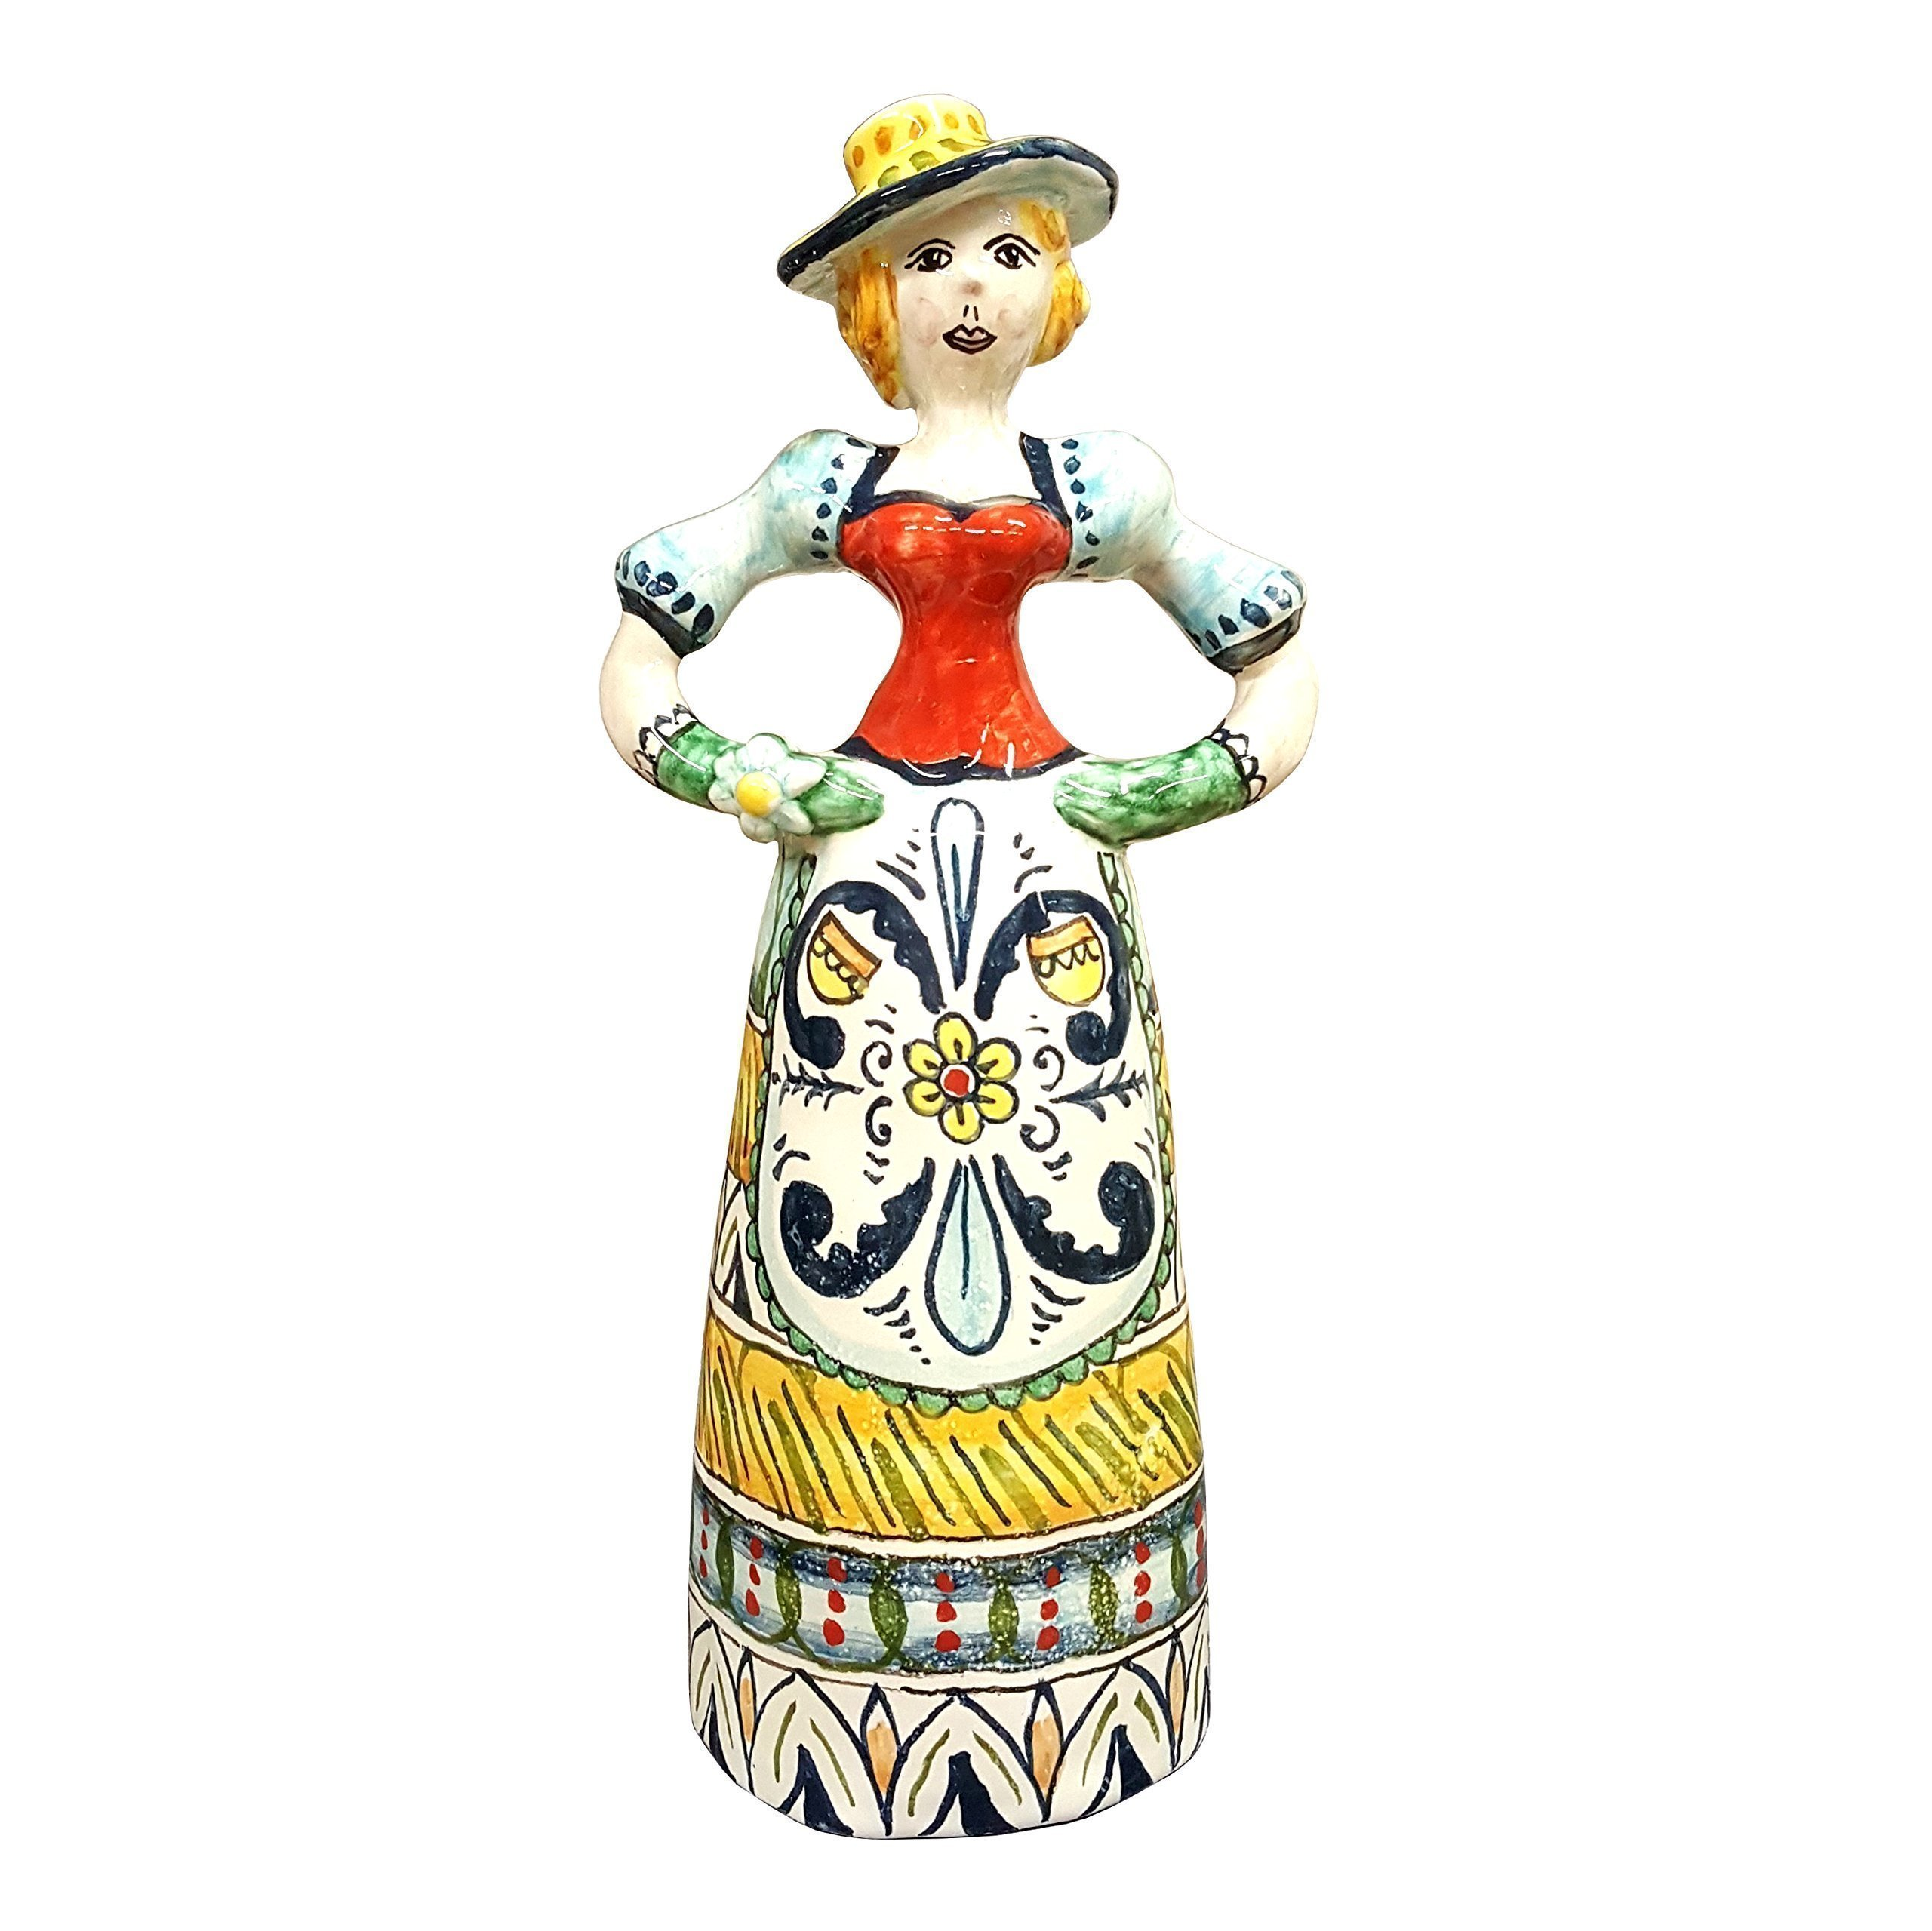 CERAMICHE D'ARTE PARRINI- Italian Ceramic Doll Small Decorated Geometric Hand Painted Made in ITALY Tuscan Art Pottery by CERAMICHE D'ARTE PARRINI since 1979